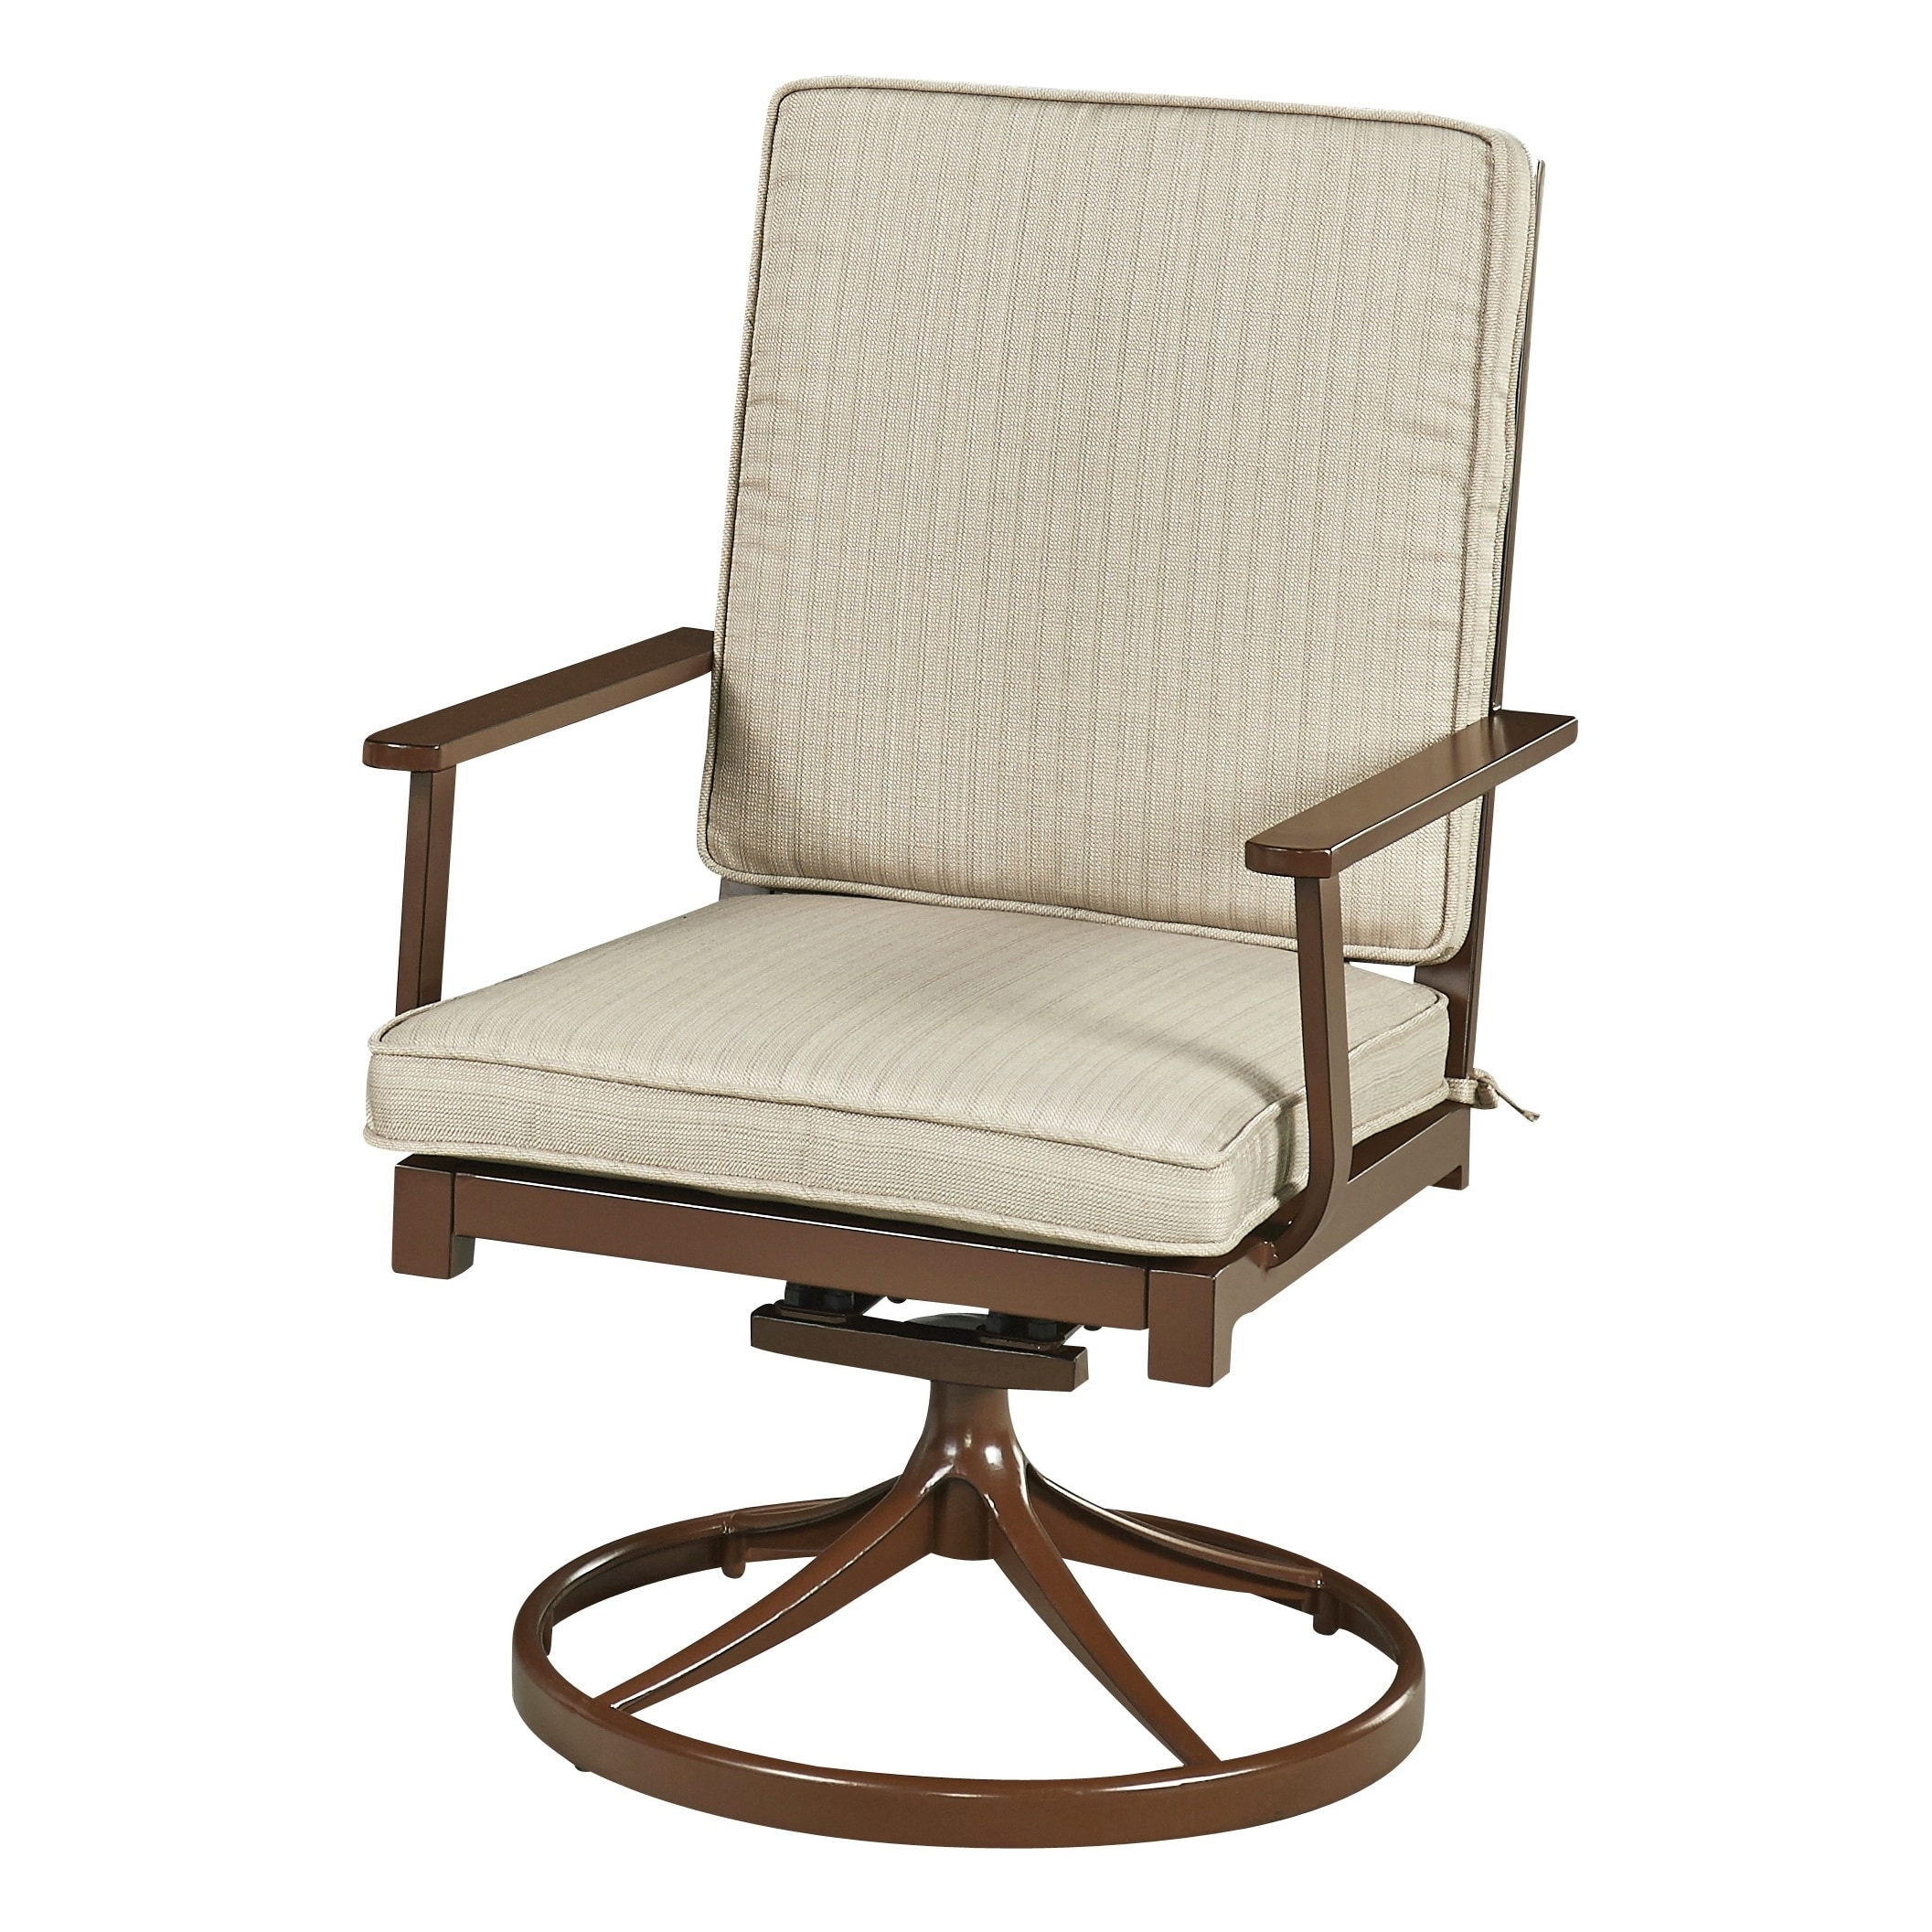 Swivel Rocking Chairs Key West Swivel Rocking Chair By Home Styles